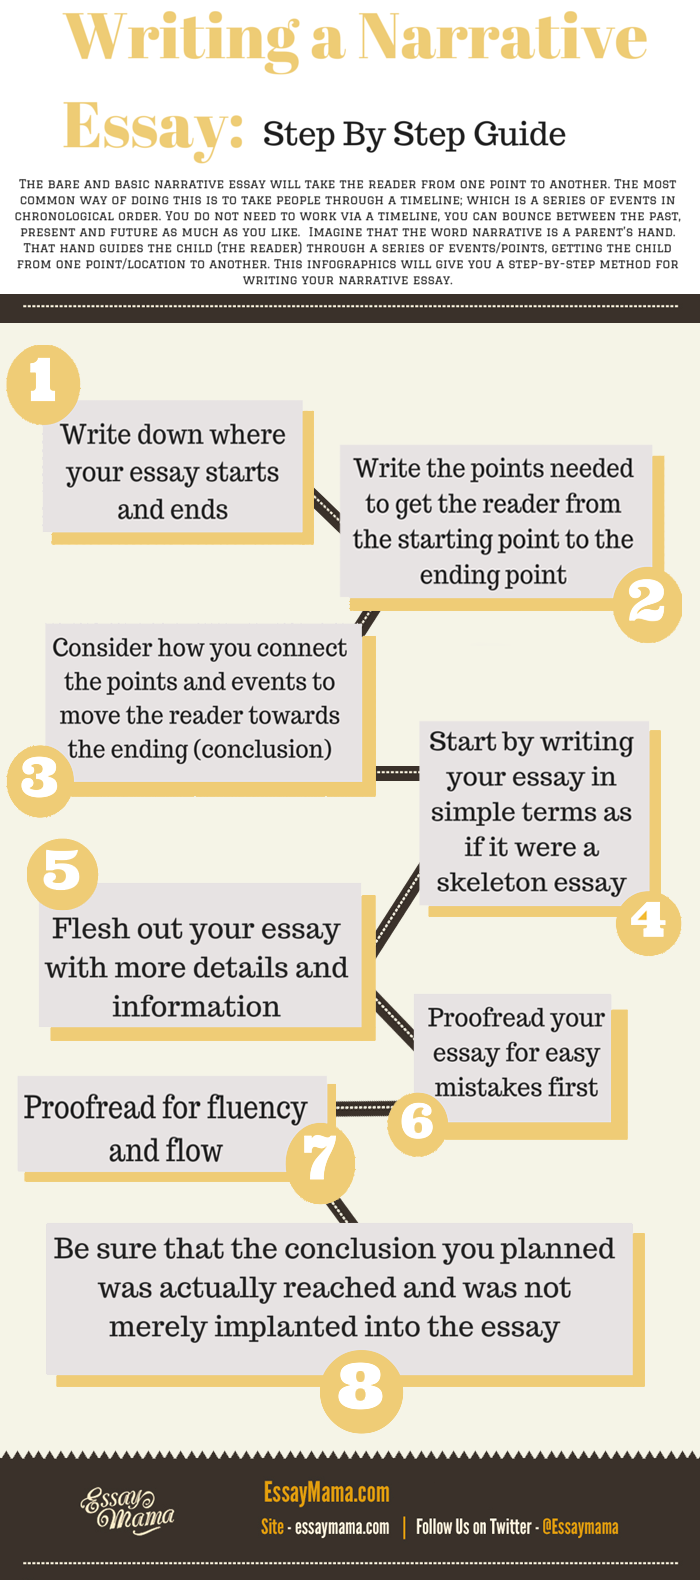 Writing A Narrative Essay Can Be A Daunting Task For Students